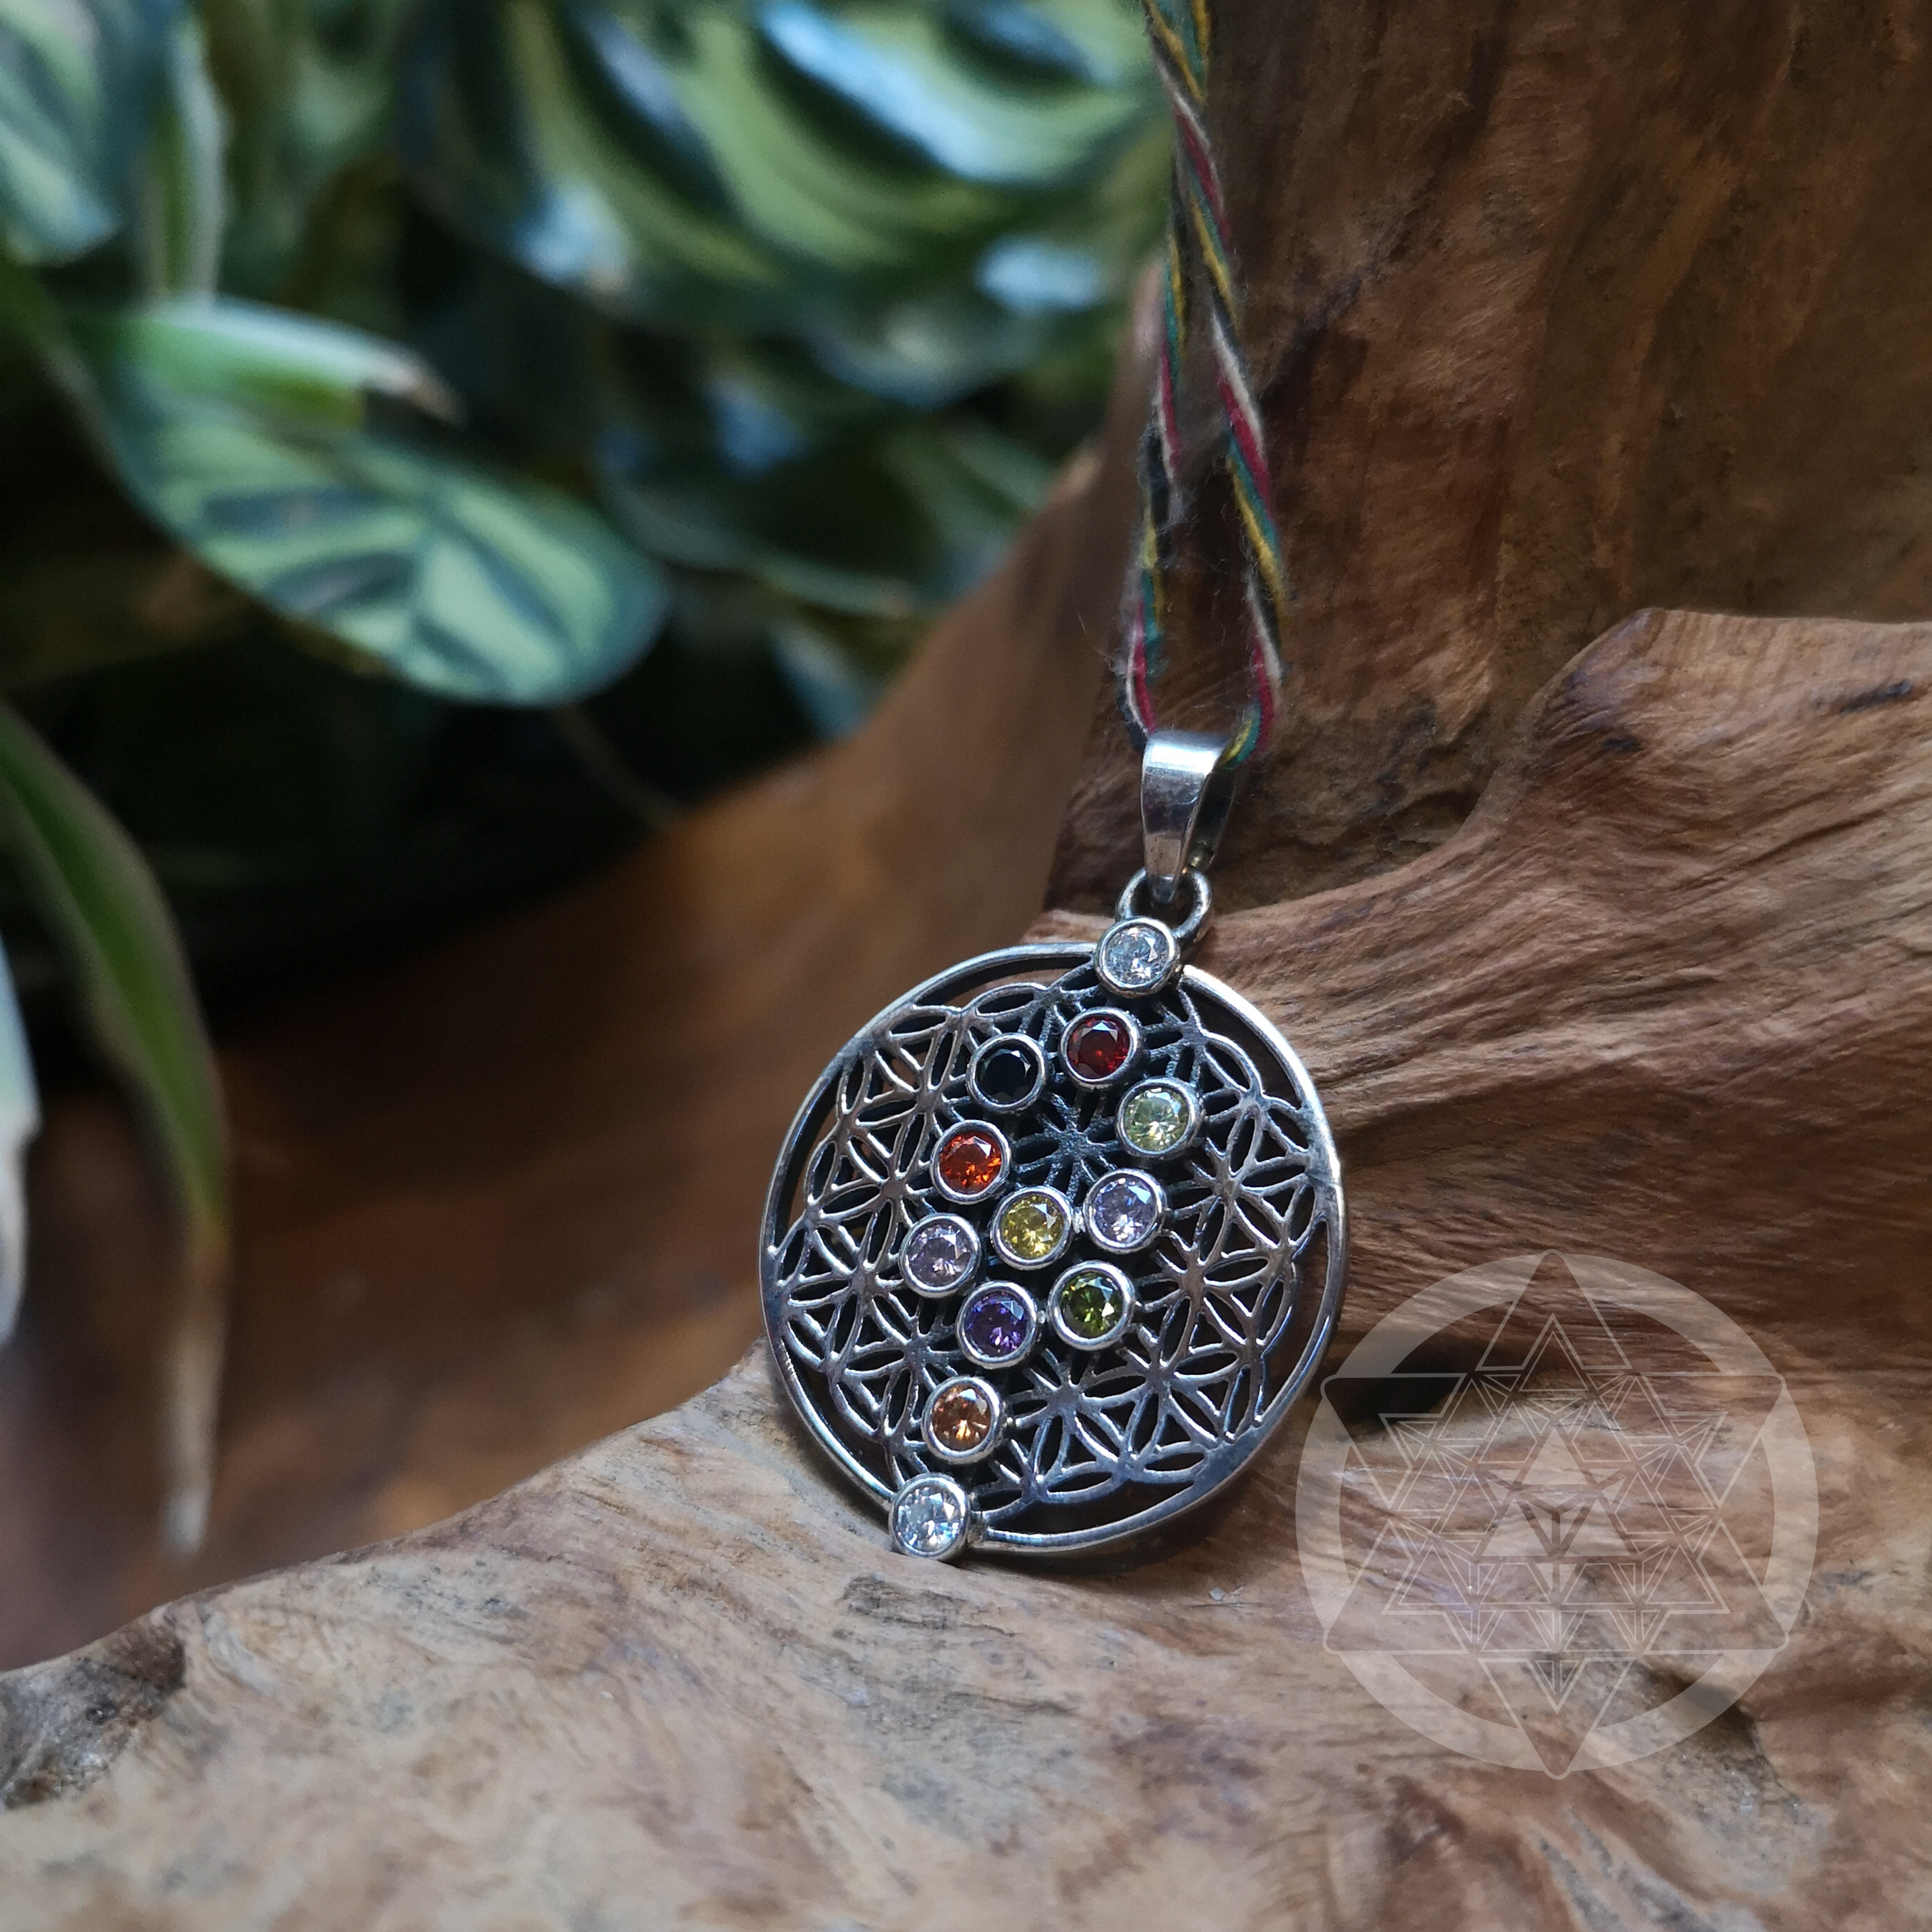 Flower Of Life Reversible Kabbalah Tree Of Life Pendant Athma Soulutions In transformational kabbalah the tree of life is used as a pragmatic tool for seeing how and why things, people, and events manifest the sefirot of the tree of life. athma soulutions